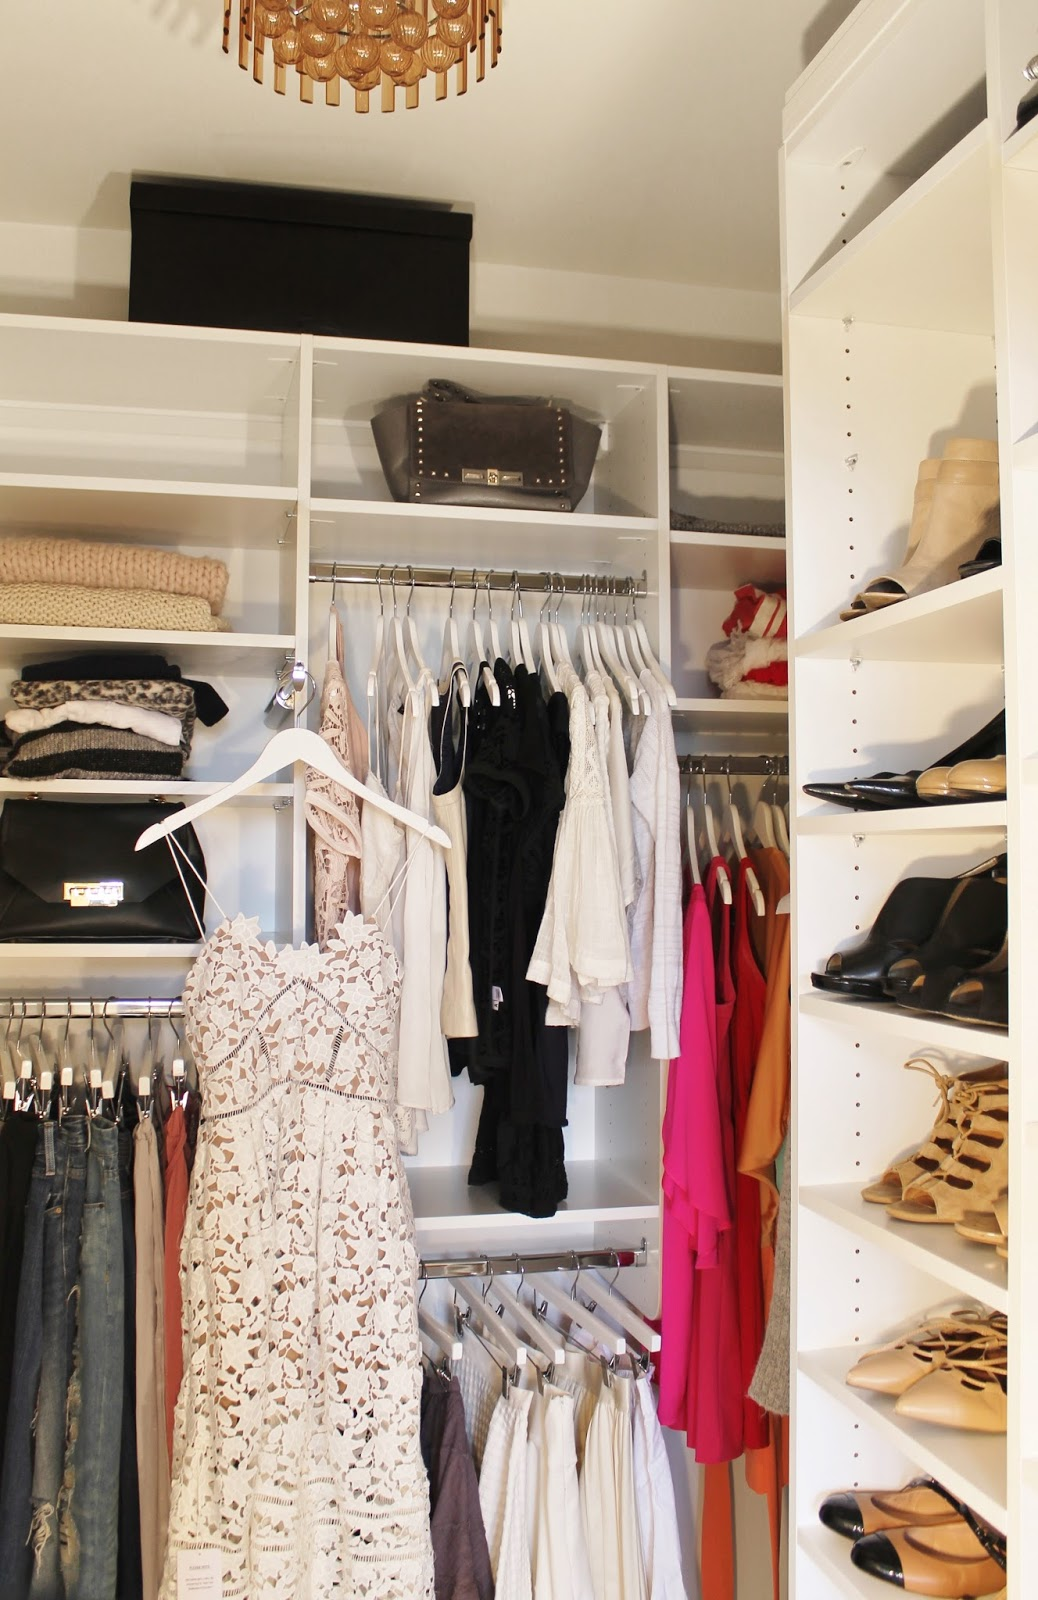 My Master Bedroom Closet Reveal With California Closets Before